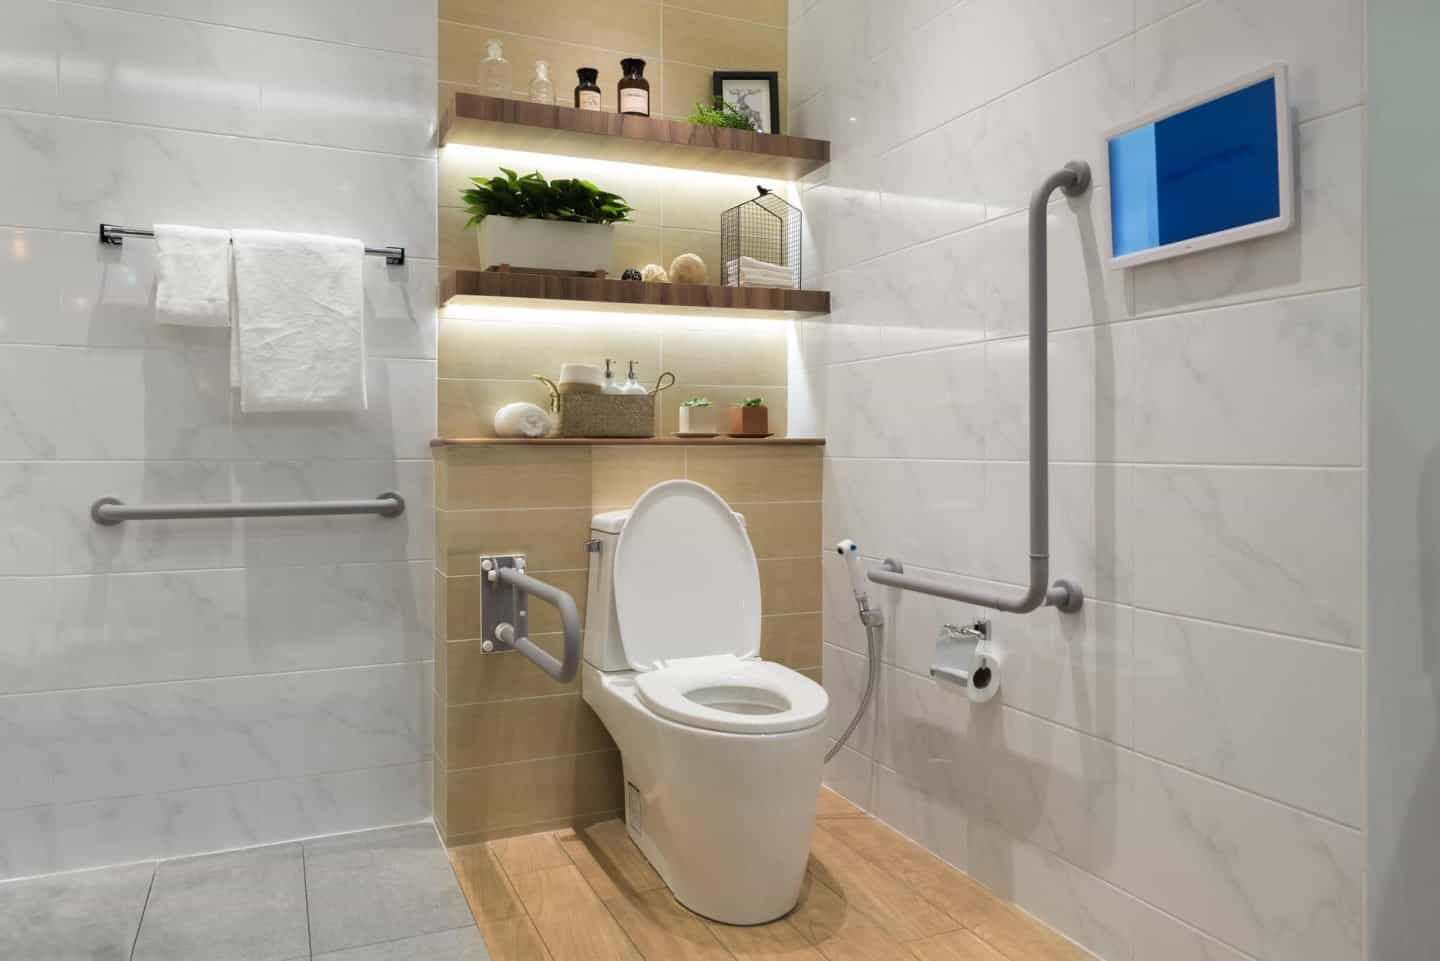 Top Tips For Making your Bathroom 'Grandparent' Friendly